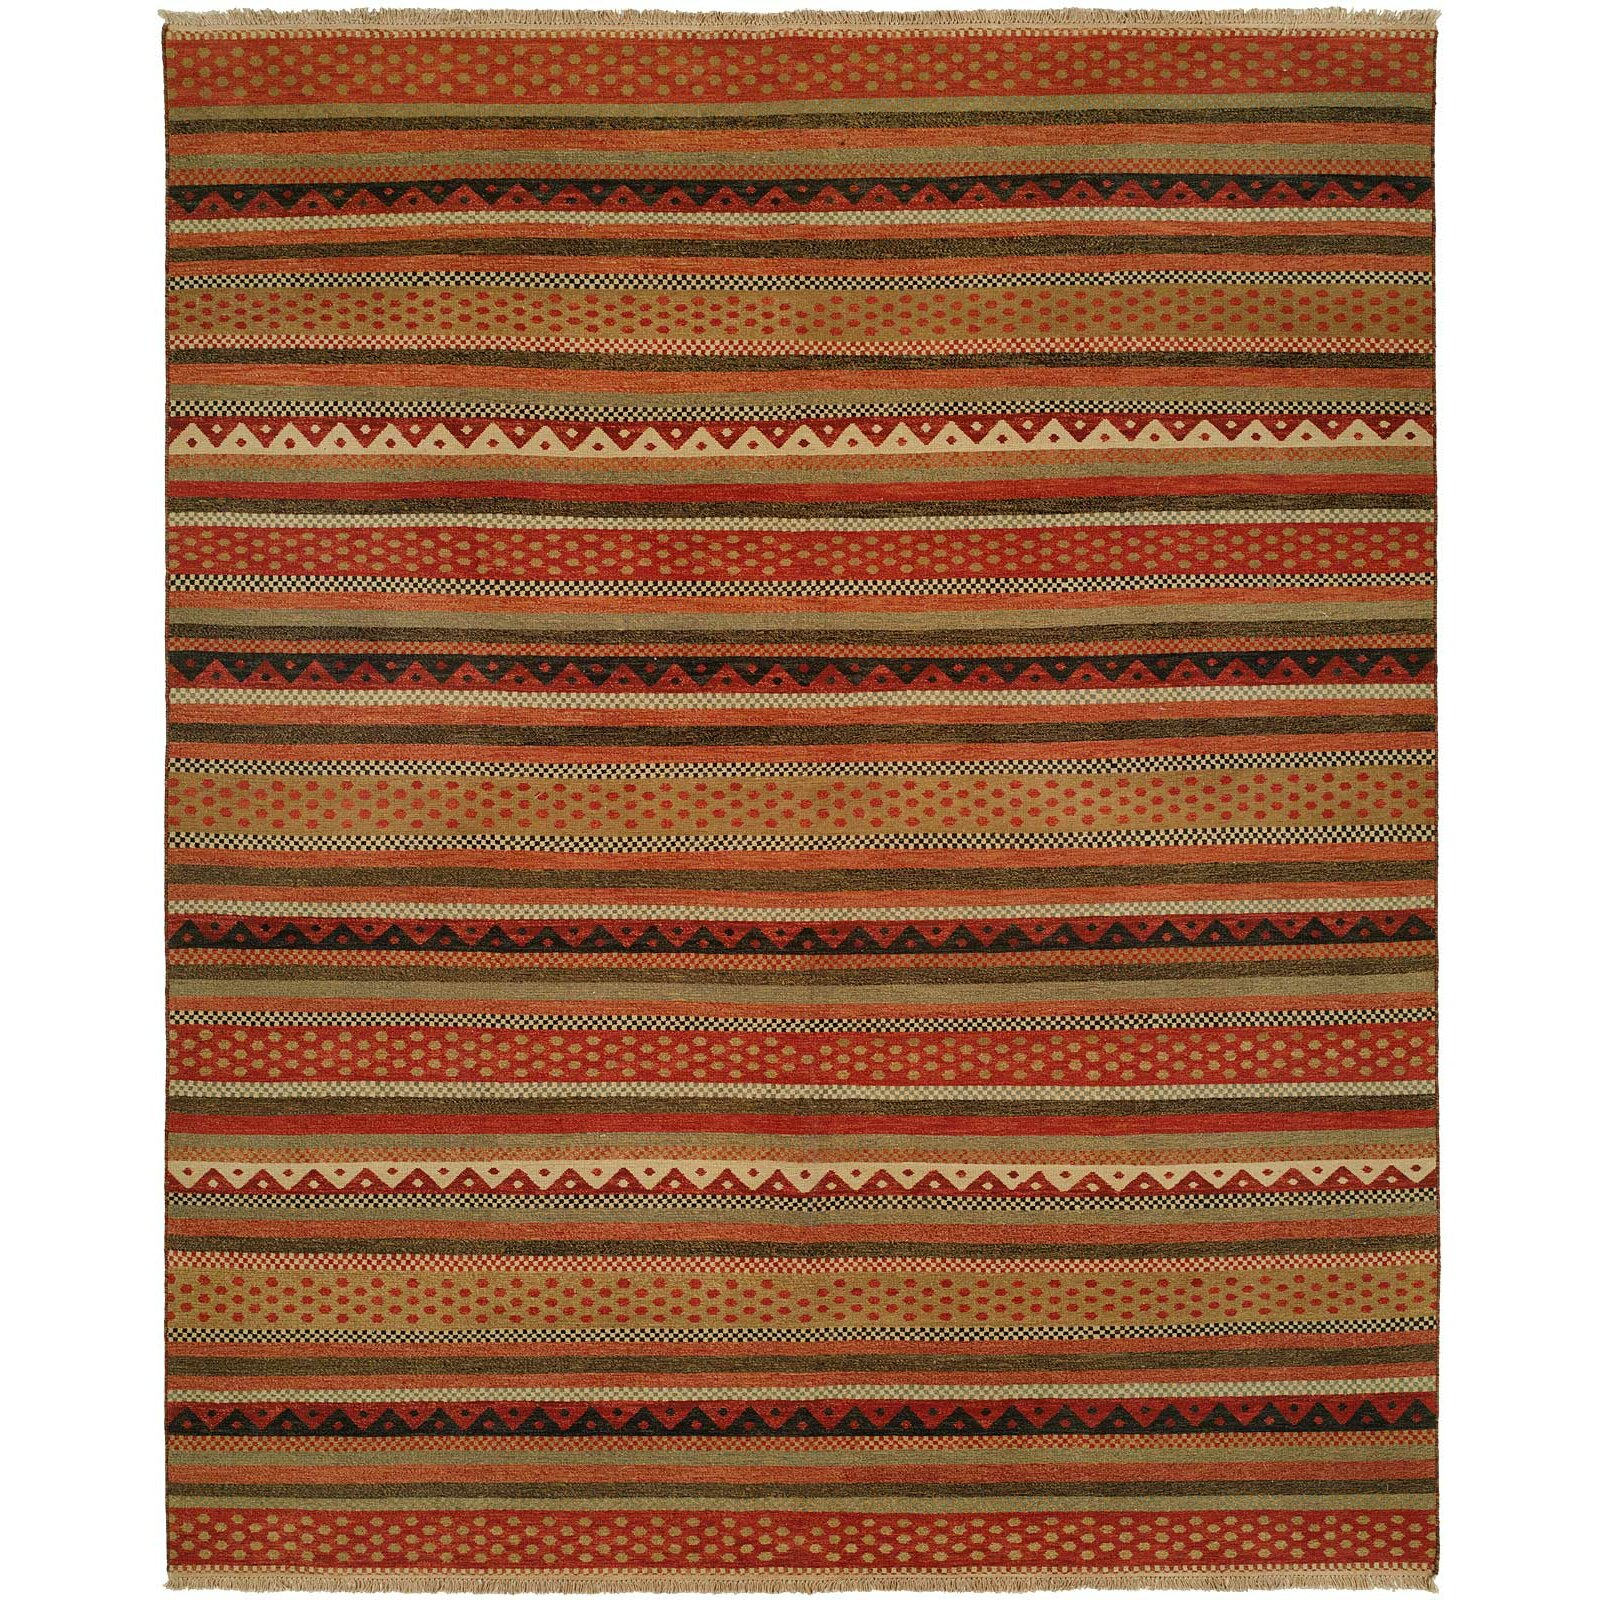 Rug Store Brisbane: Queensland Area Rug